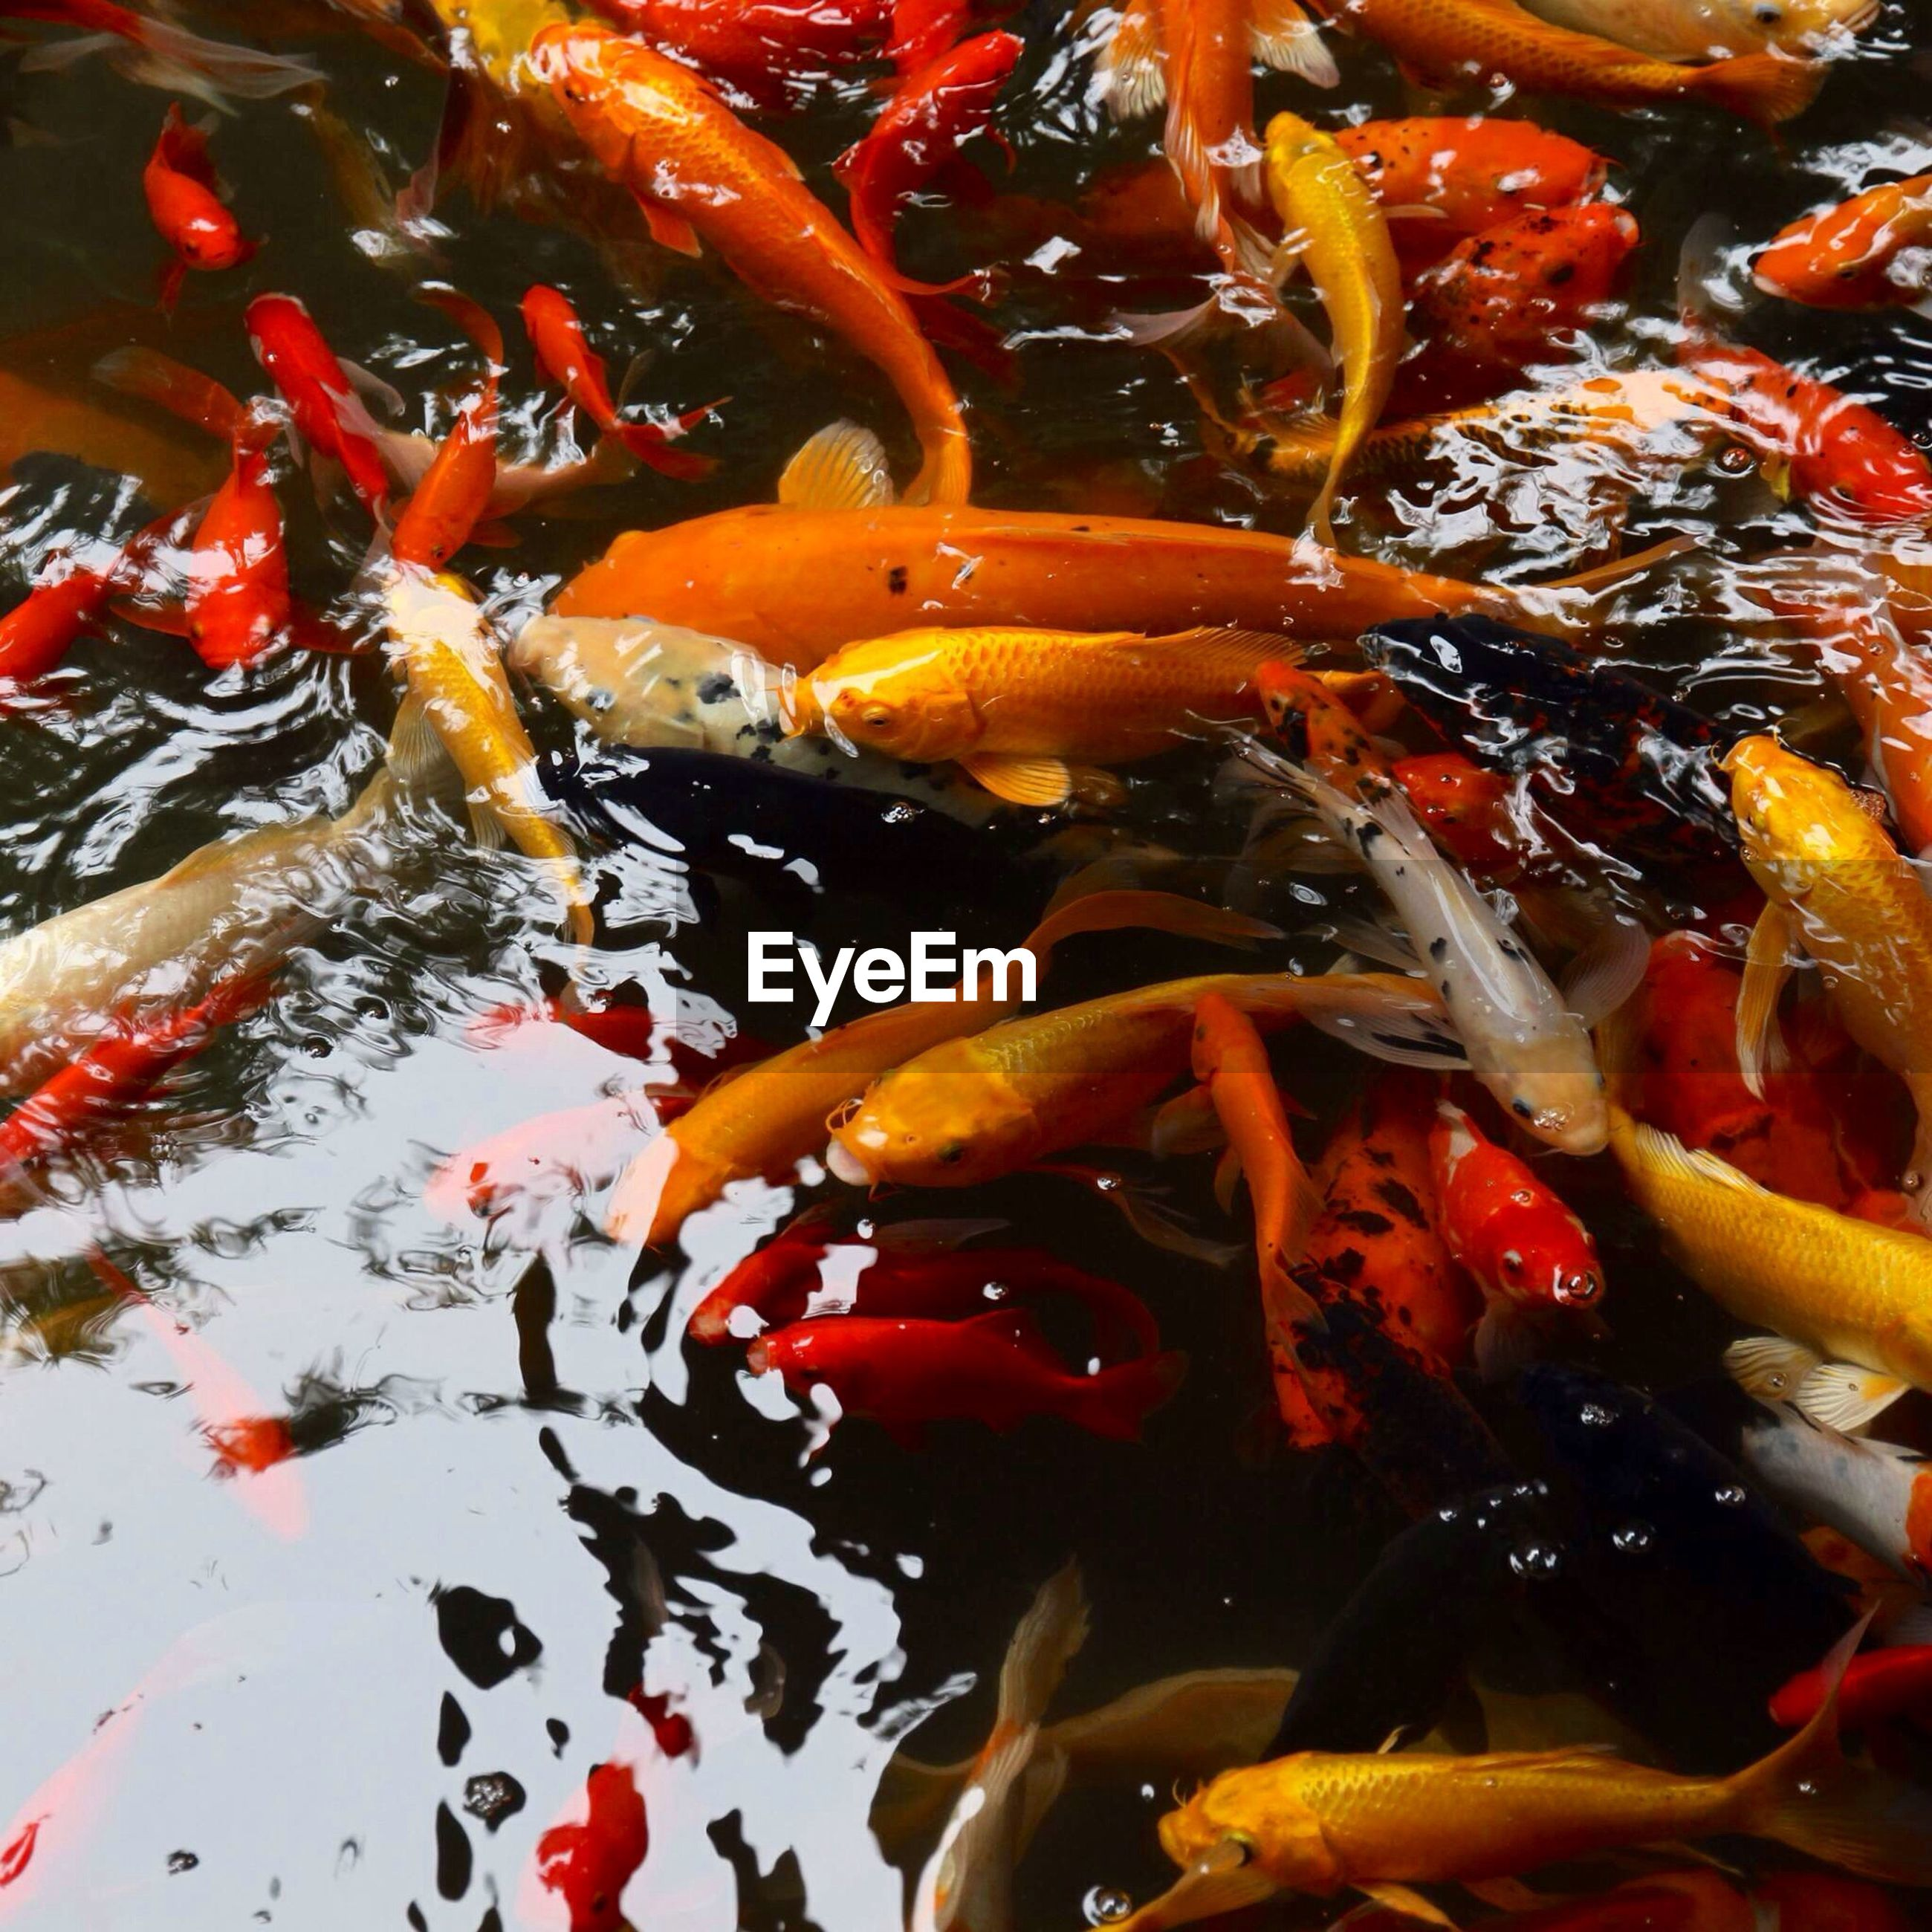 water, fish, animal themes, full frame, swimming, orange color, sea life, school of fish, koi carp, backgrounds, nature, close-up, pond, animals in the wild, wildlife, high angle view, underwater, no people, beauty in nature